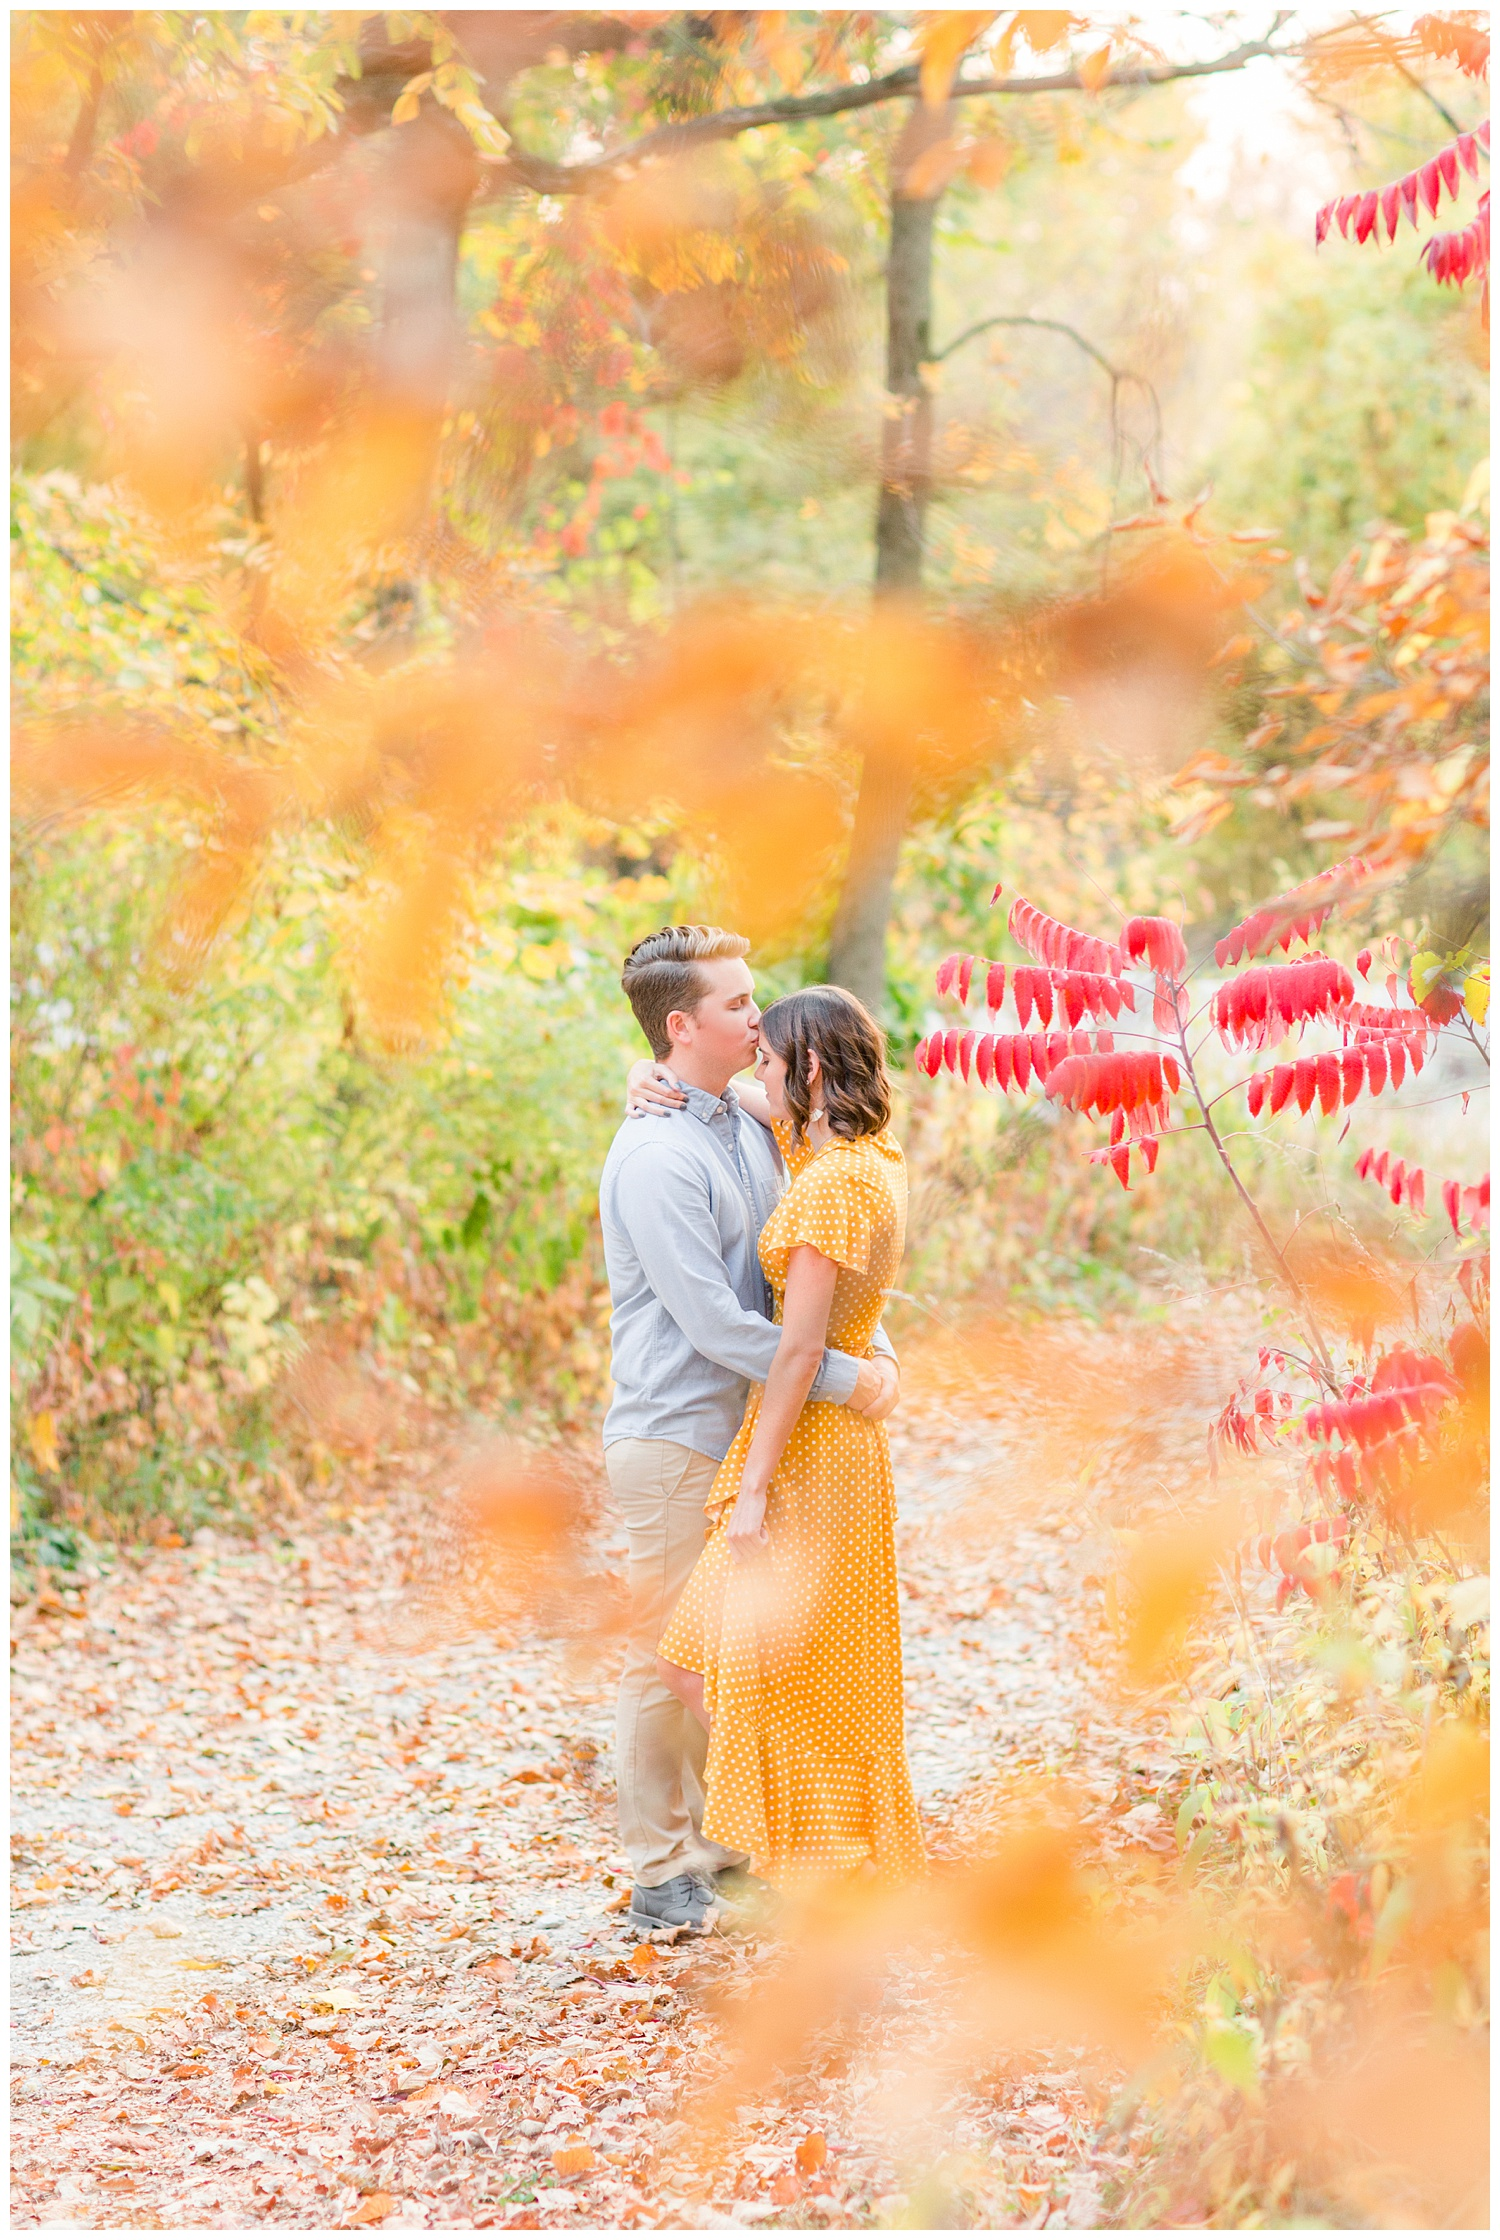 Luke kisses his girl on the forehead as they embrace in the middle of a fall wooded driveway | Iowa Wedding Photographer